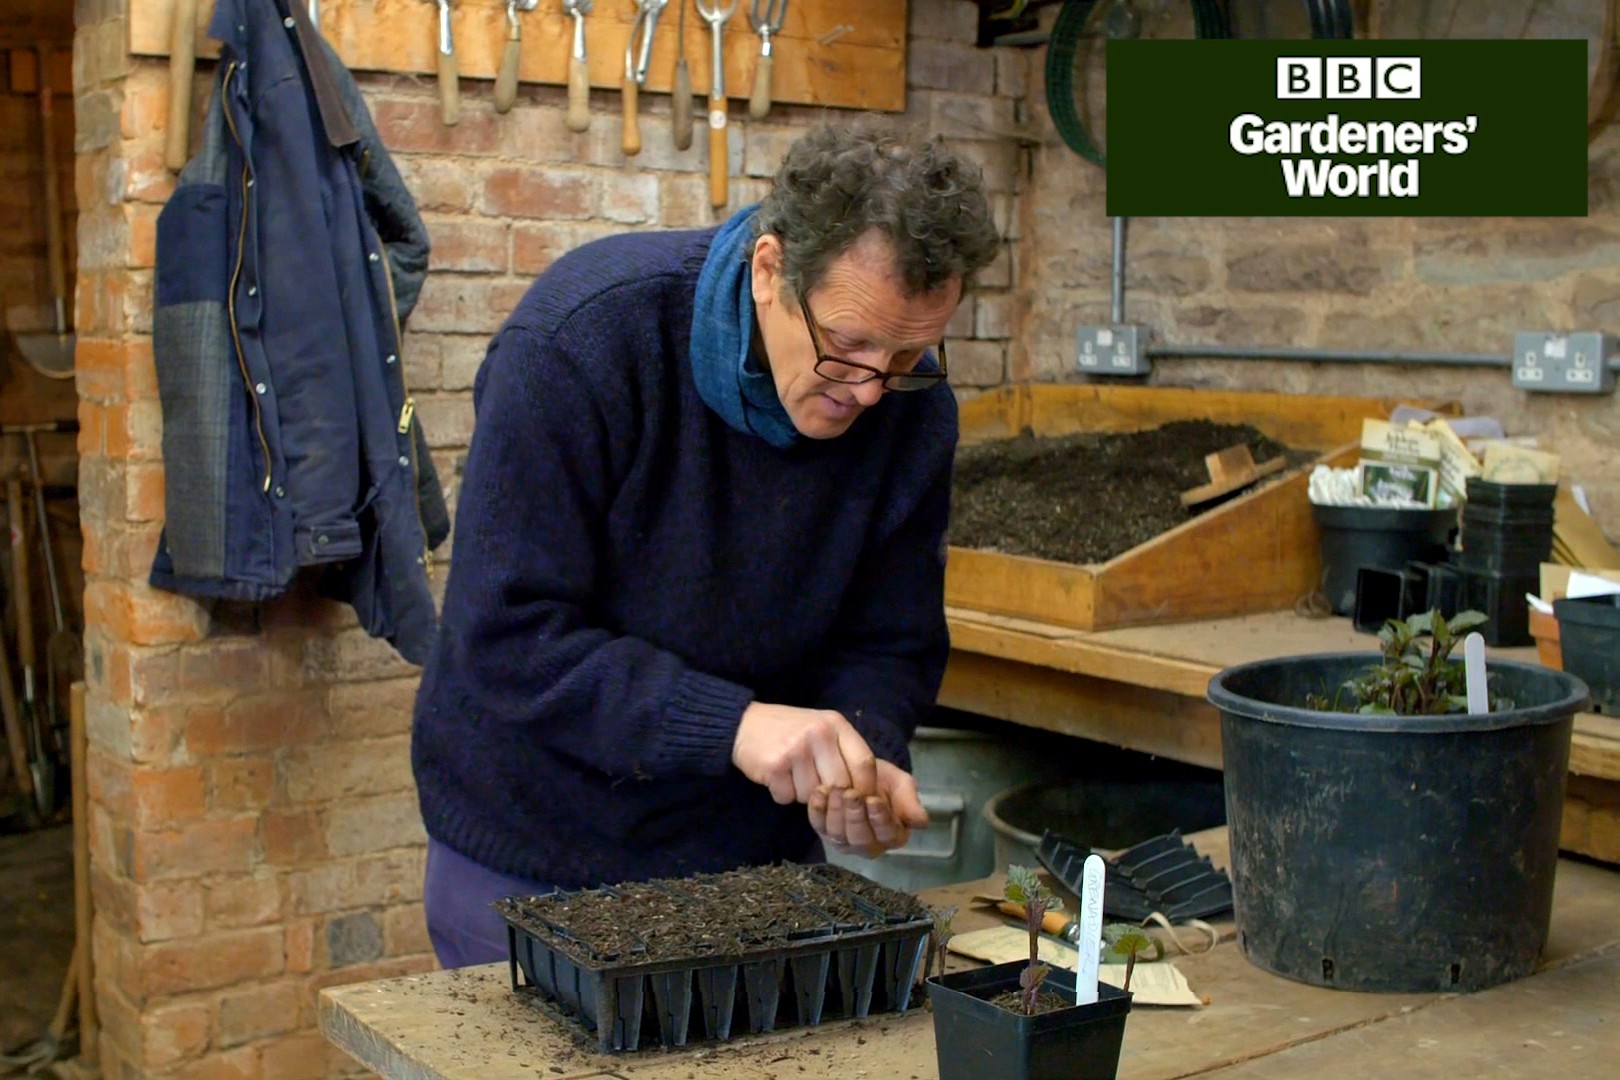 Monty Don sowing peas in a modular tray